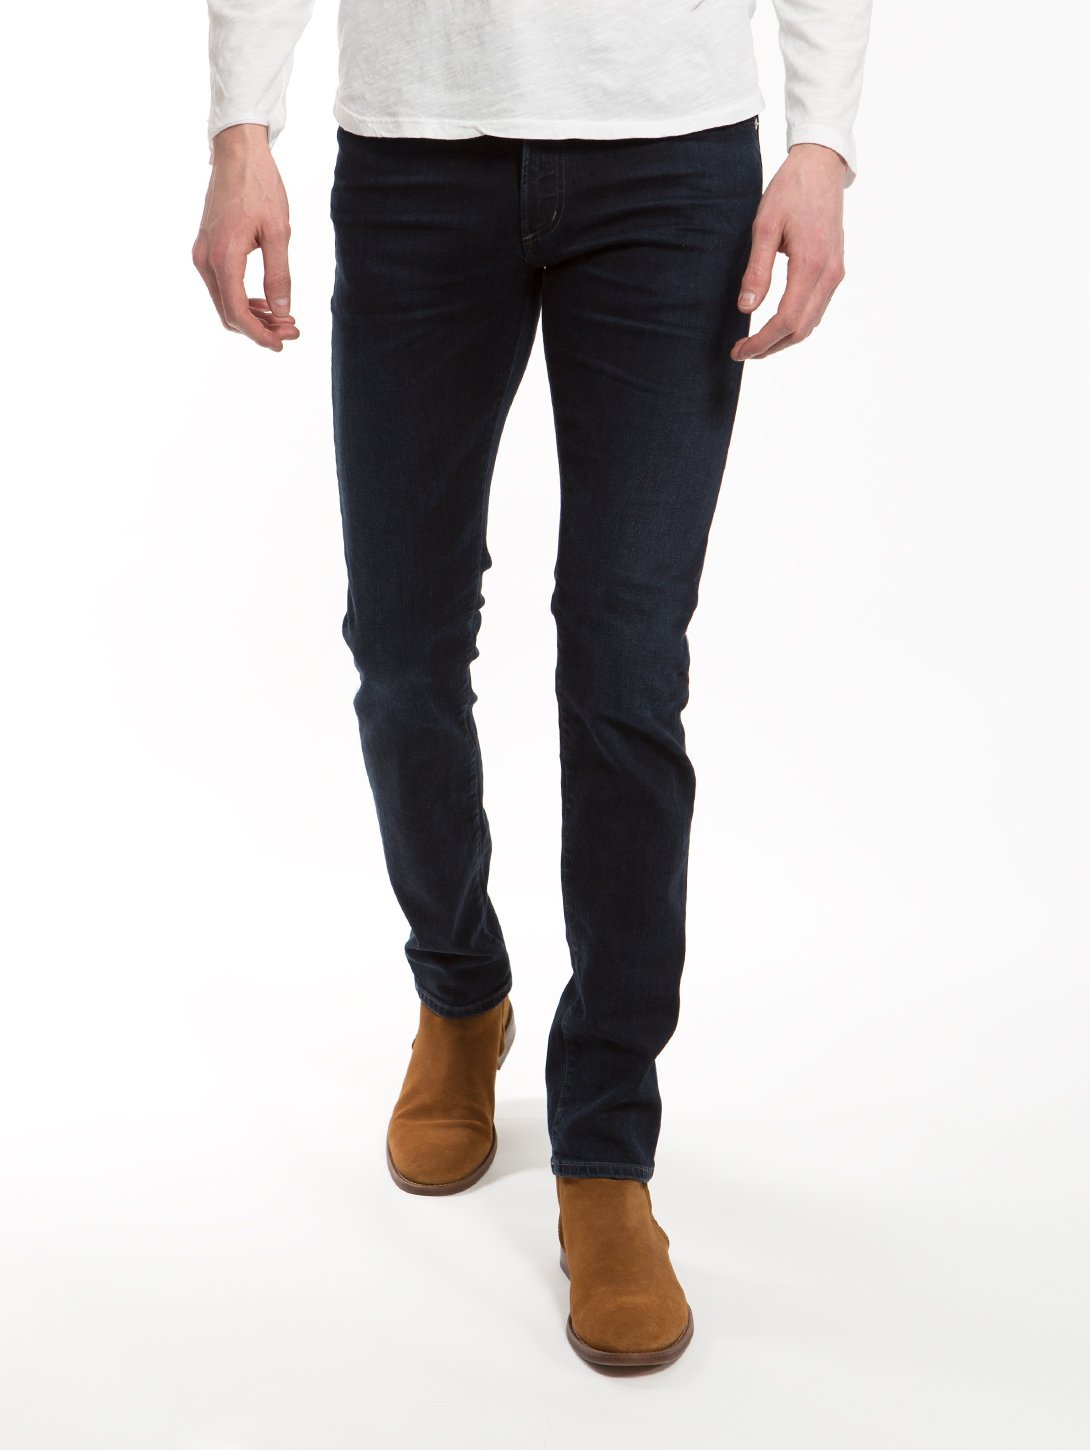 Noah Skinny Jean - Miles-Citizens of Humanity-Over the Rainbow